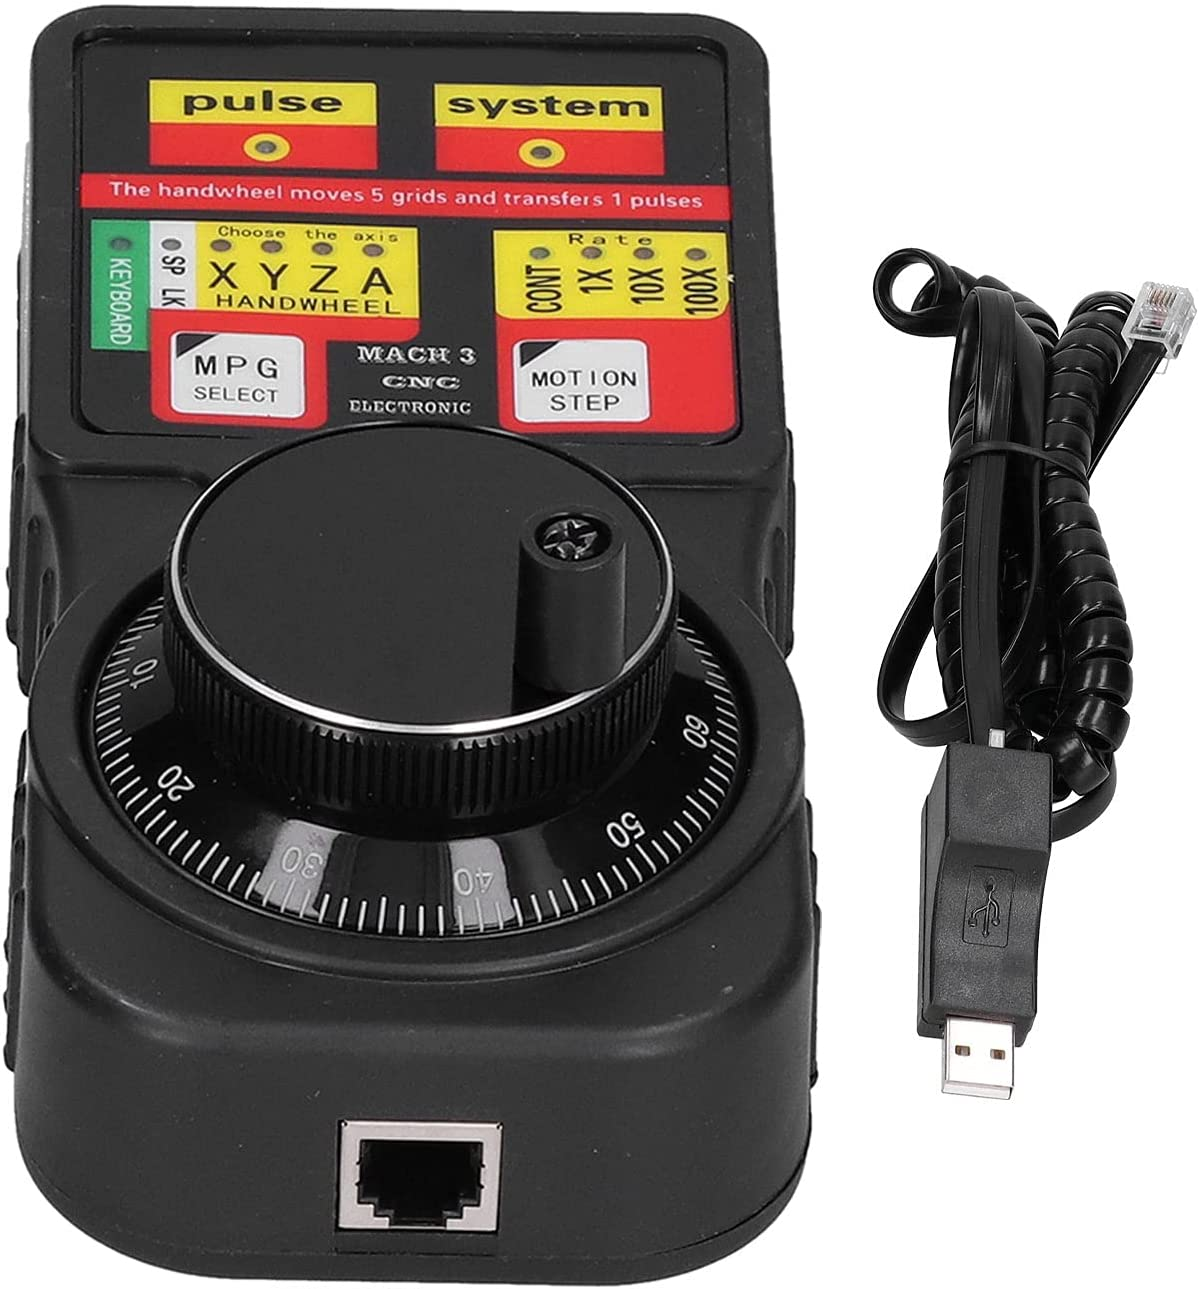 Direct store Electronic Control Handwheel Motion Super sale period limited Mode I USB Axes and